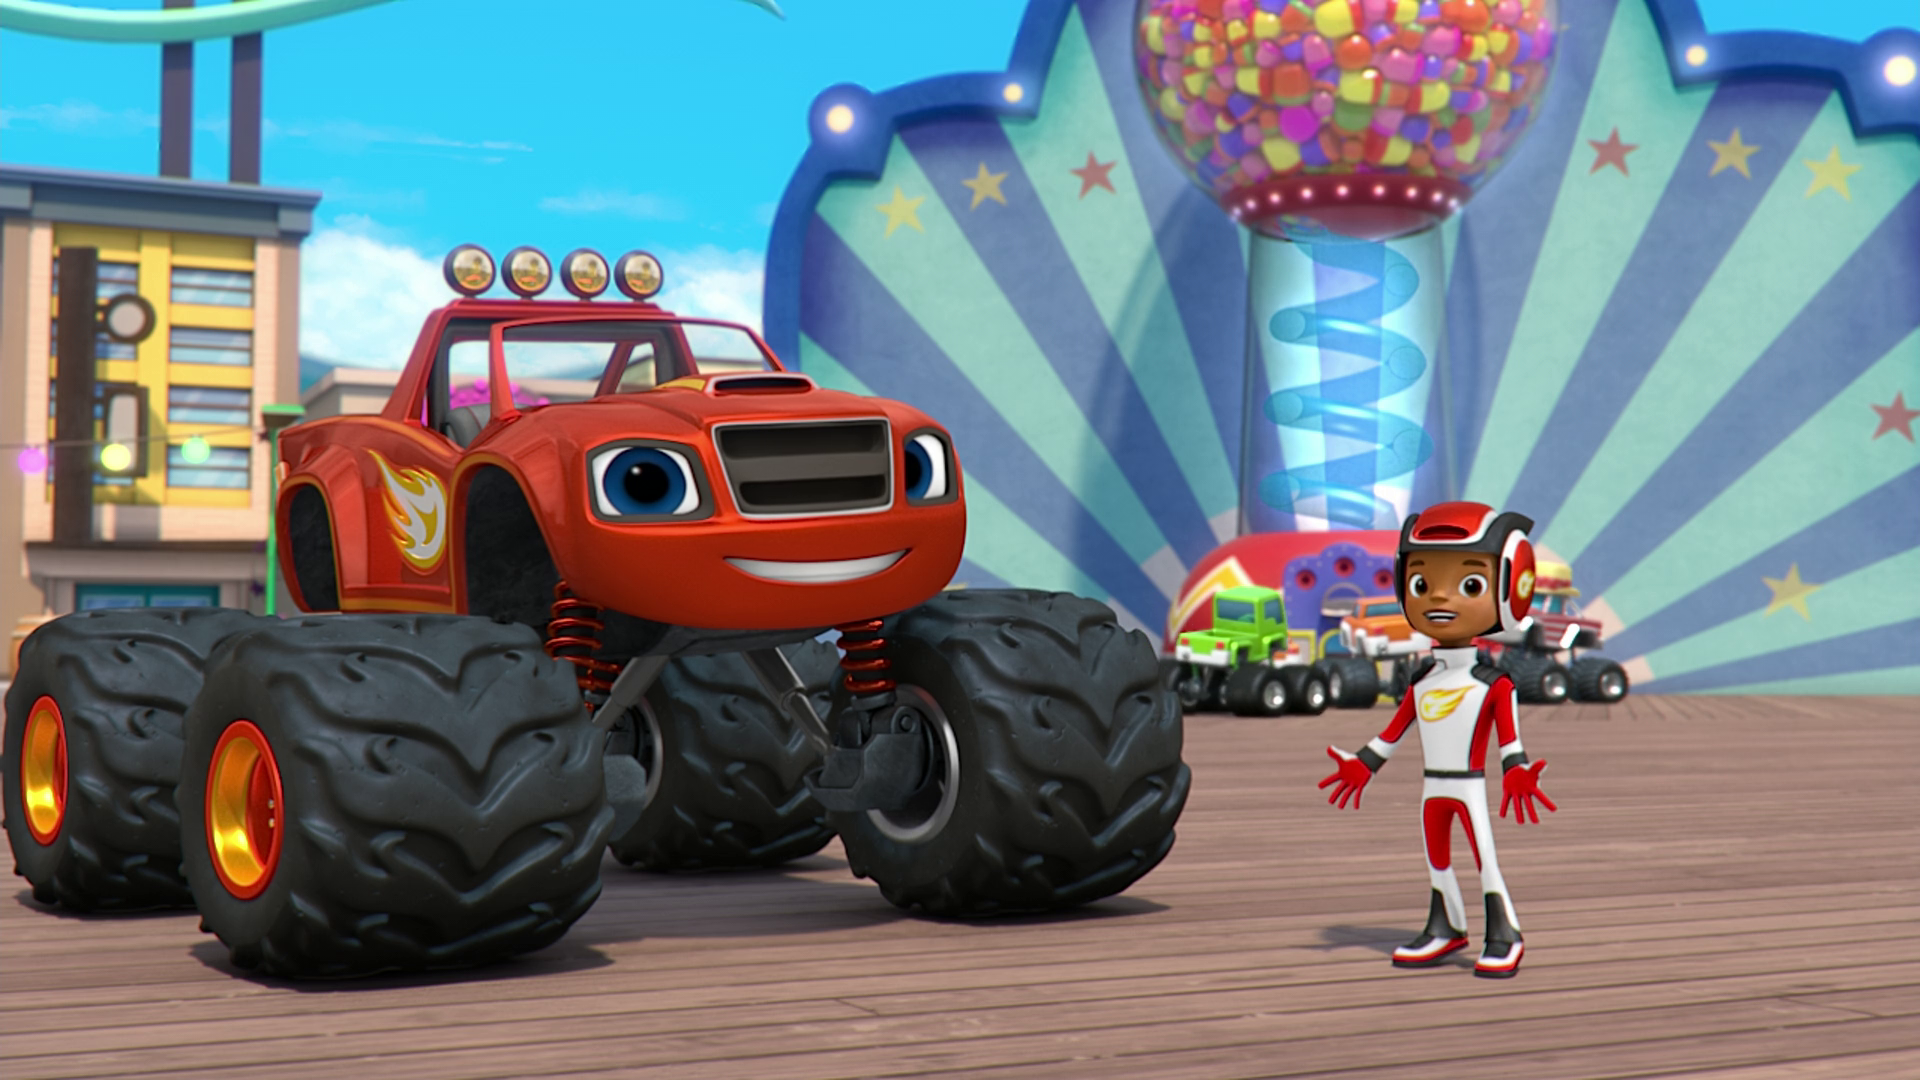 The Super-Size Prize/Trivia   Blaze and the Monster Machines